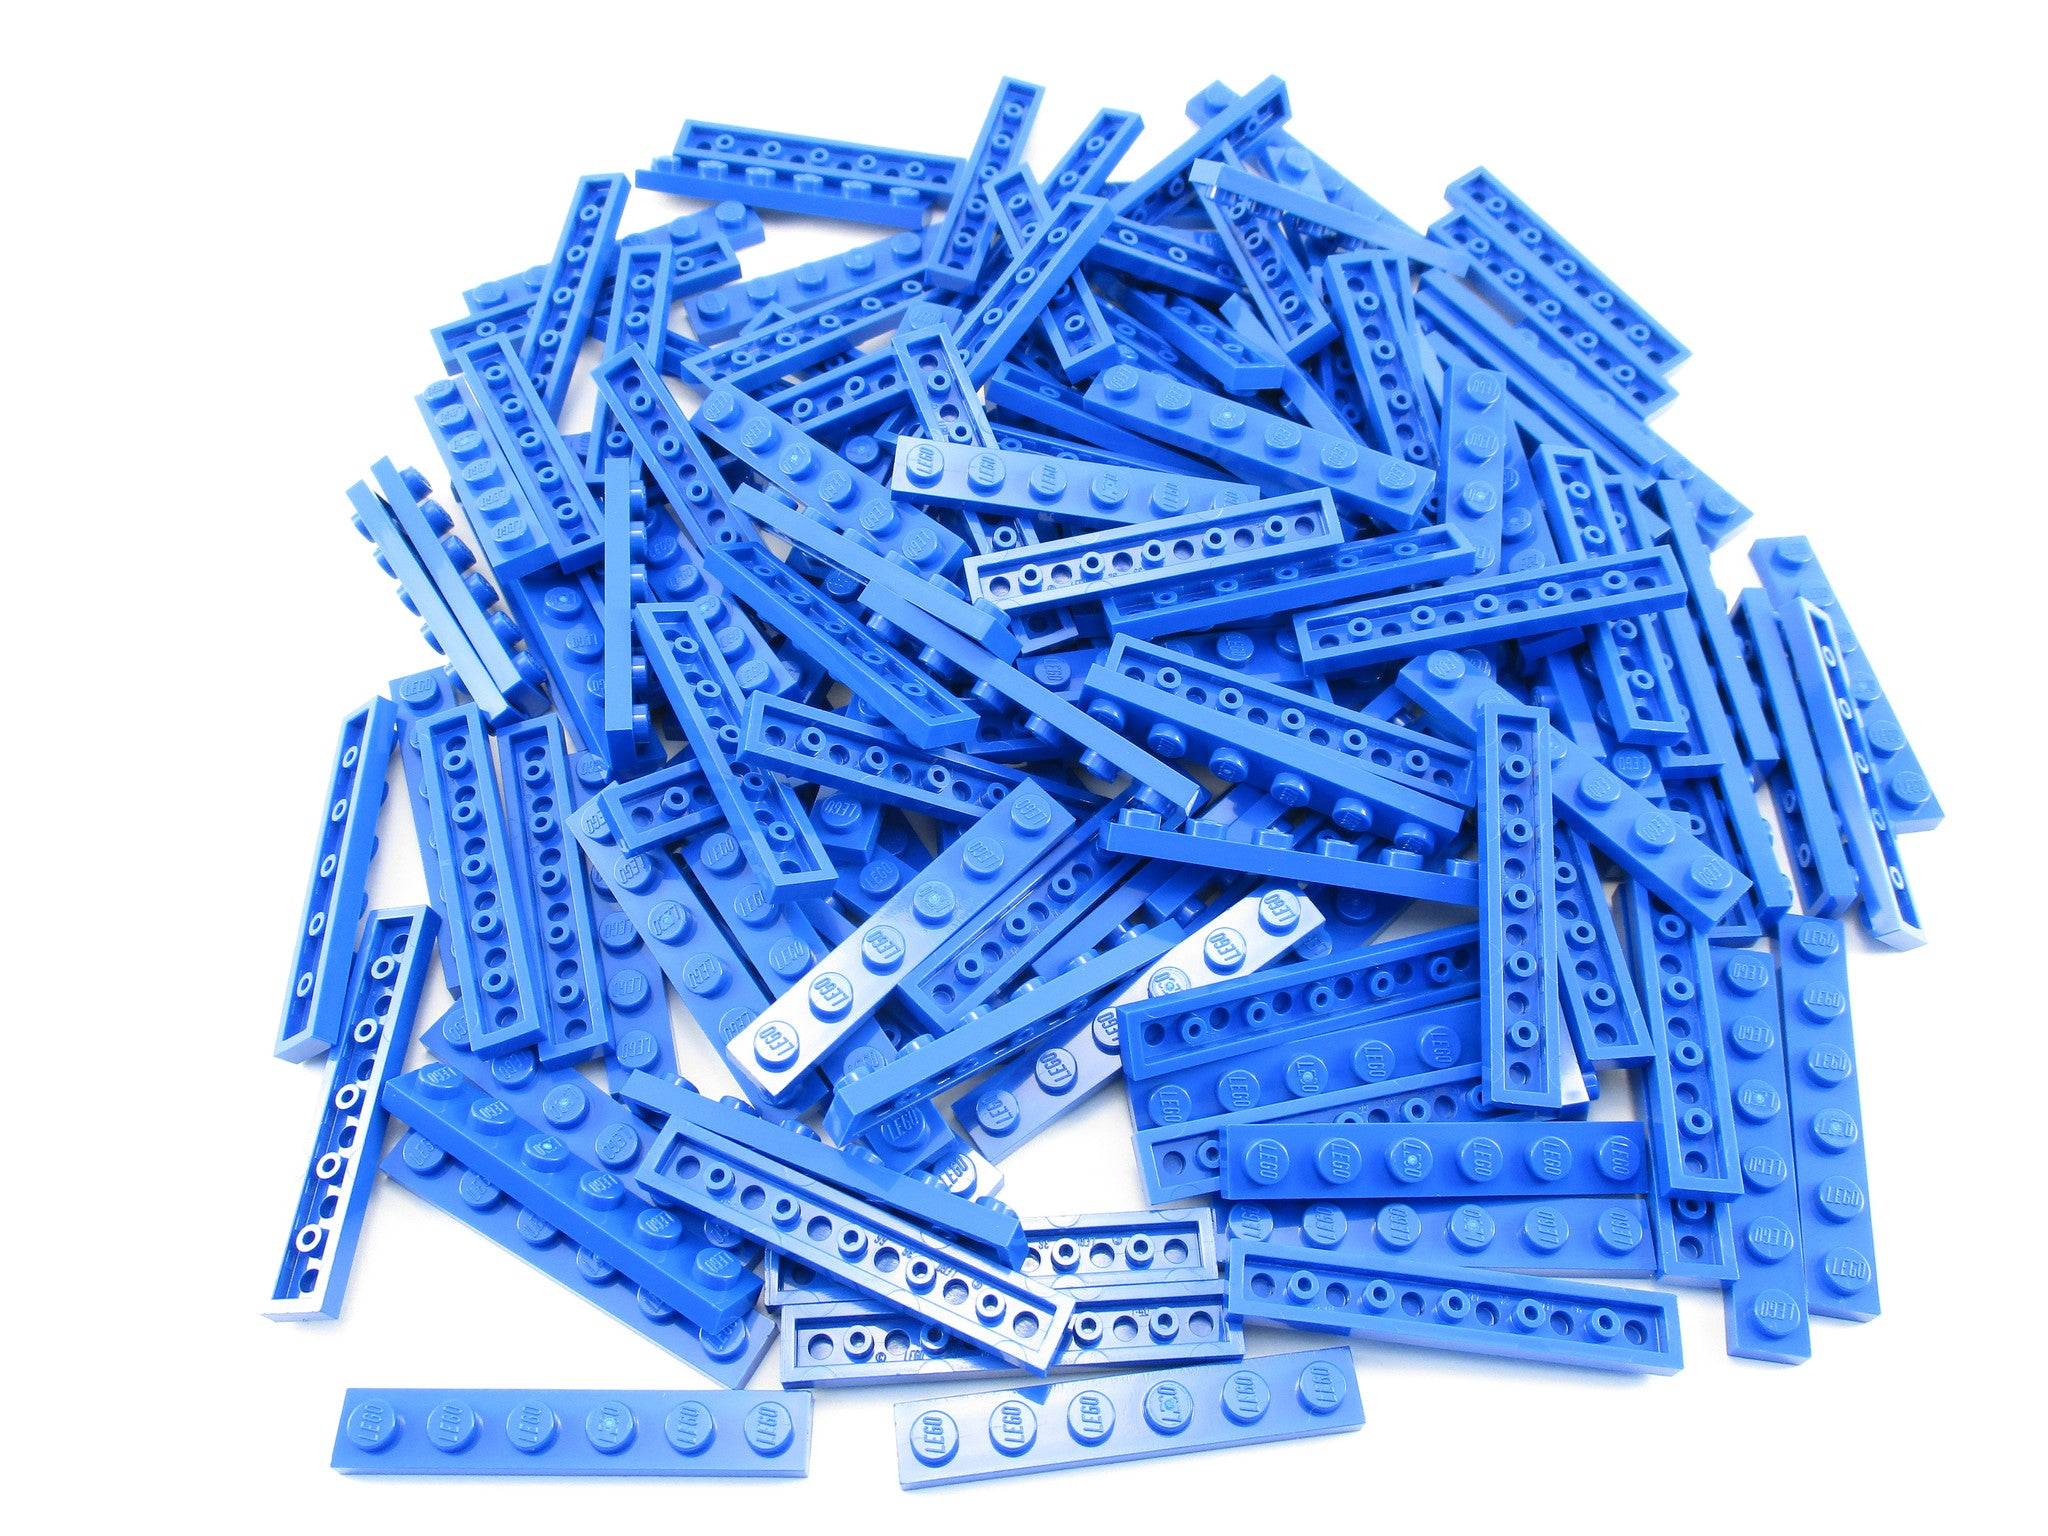 LEGO Blue Plate 1x6 Lot of 100 Parts Pieces 3666